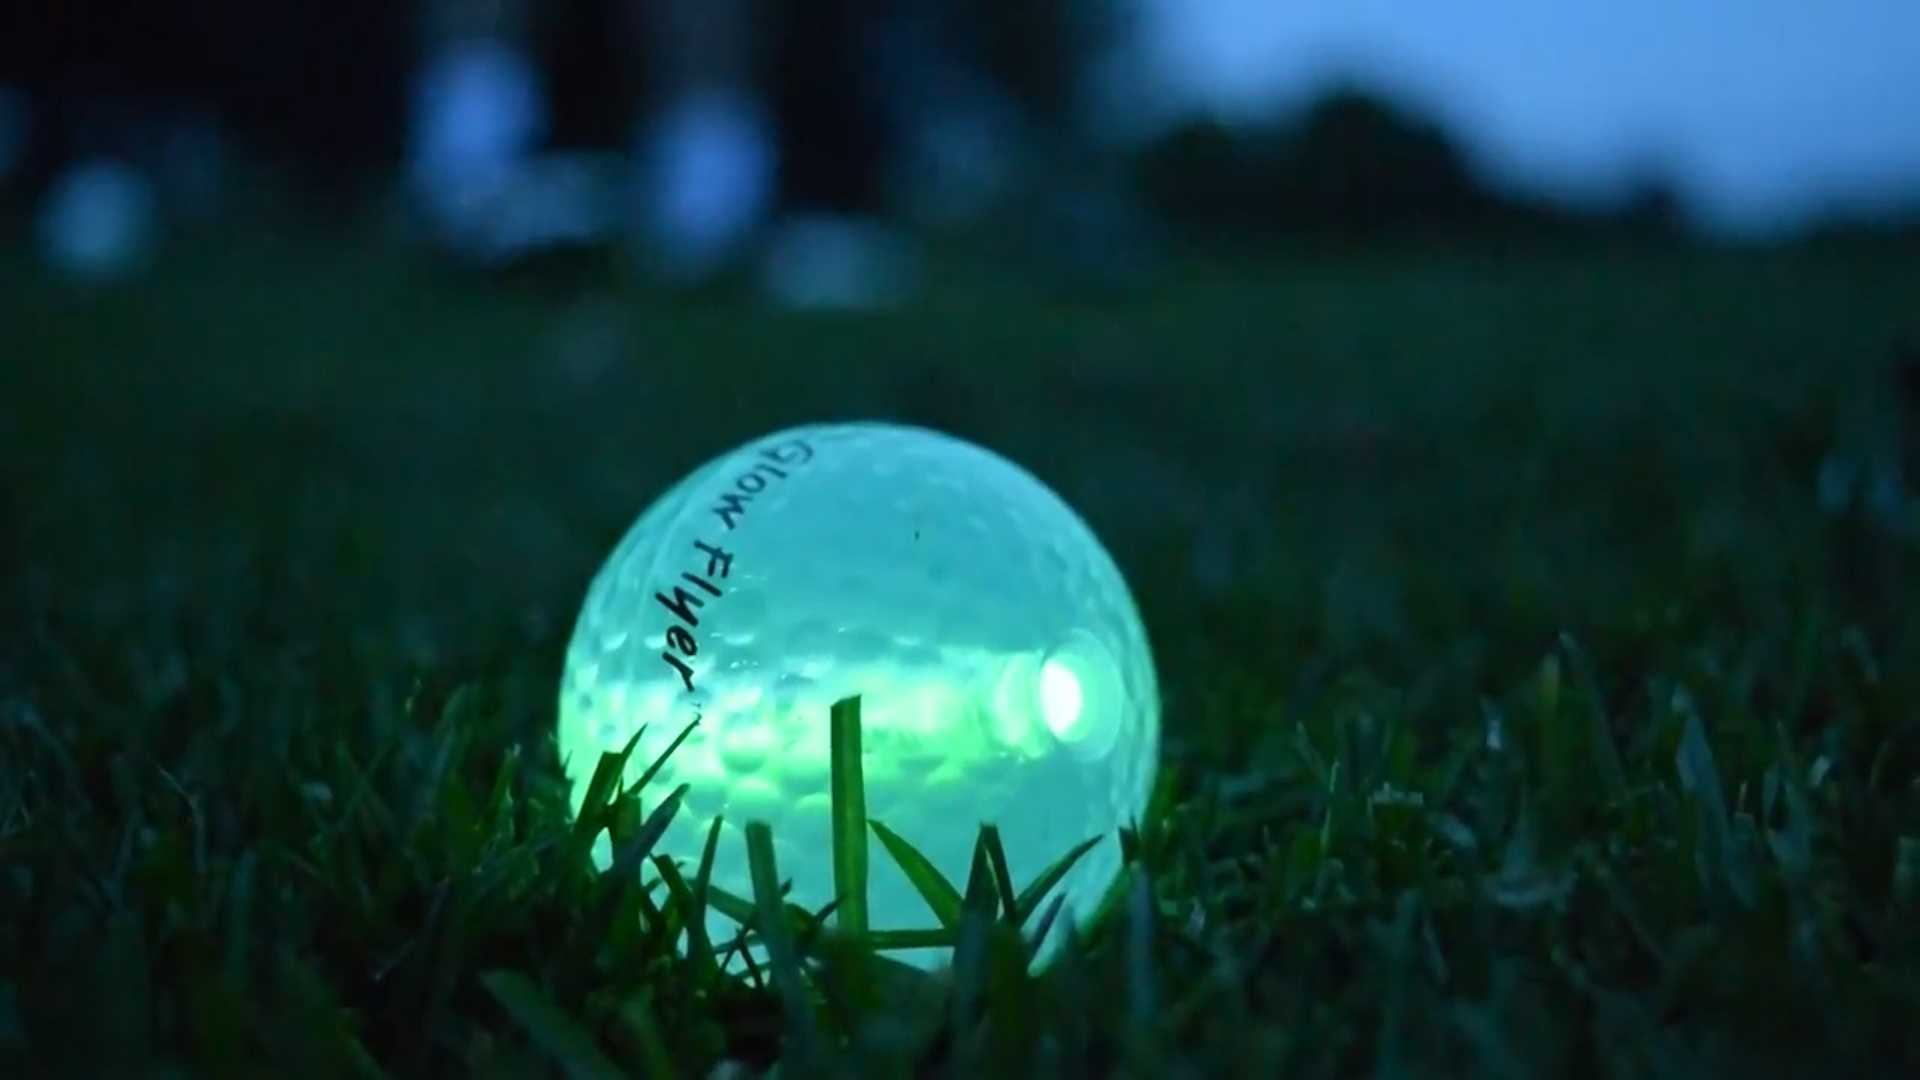 Here's your chance to golf at night, and raise money at the same time.